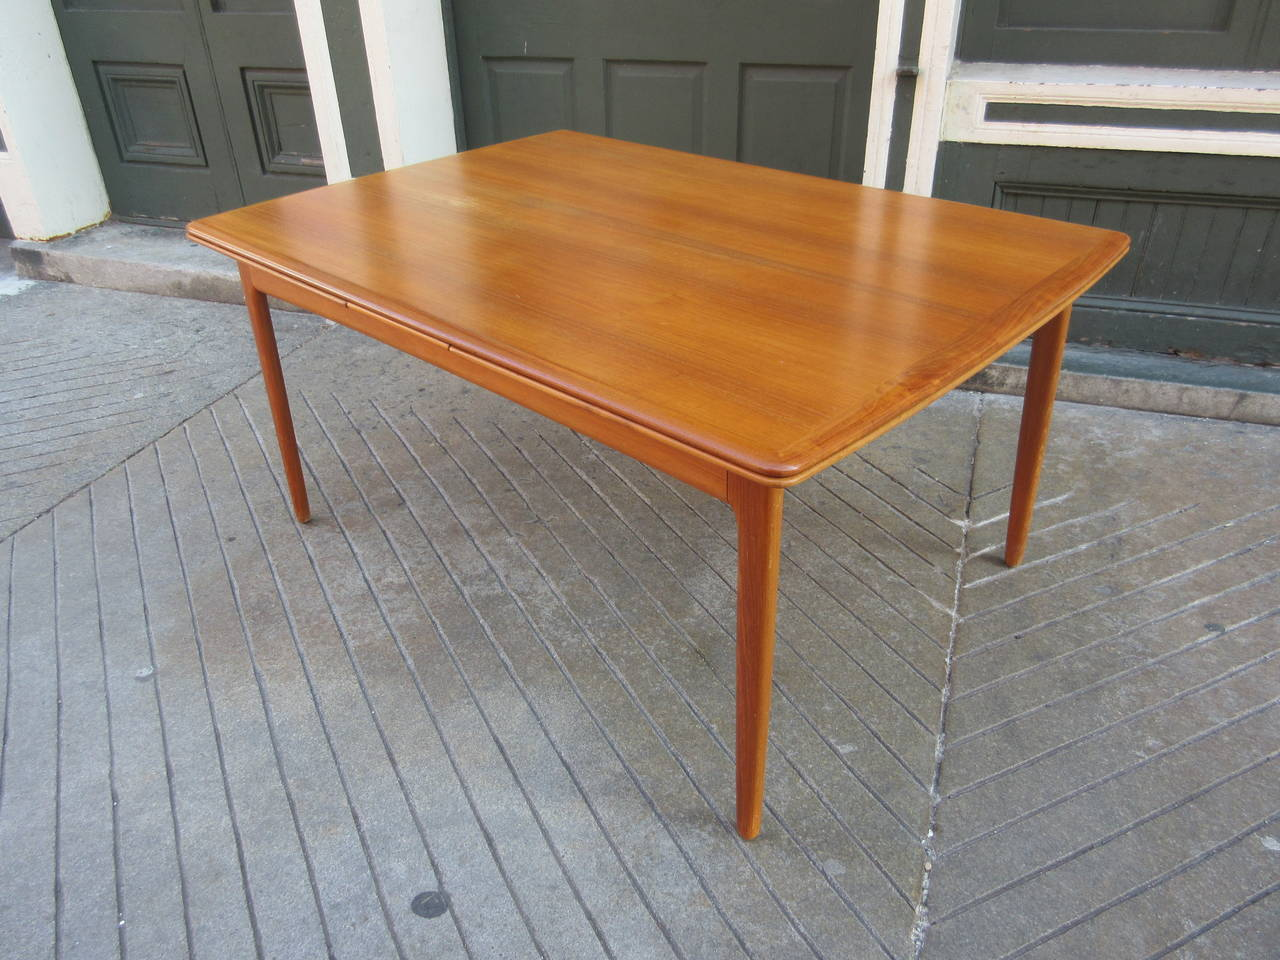 Arne Vodder Refractory Dining Table In Teak Matching Six Chairs Available And Pictured Last